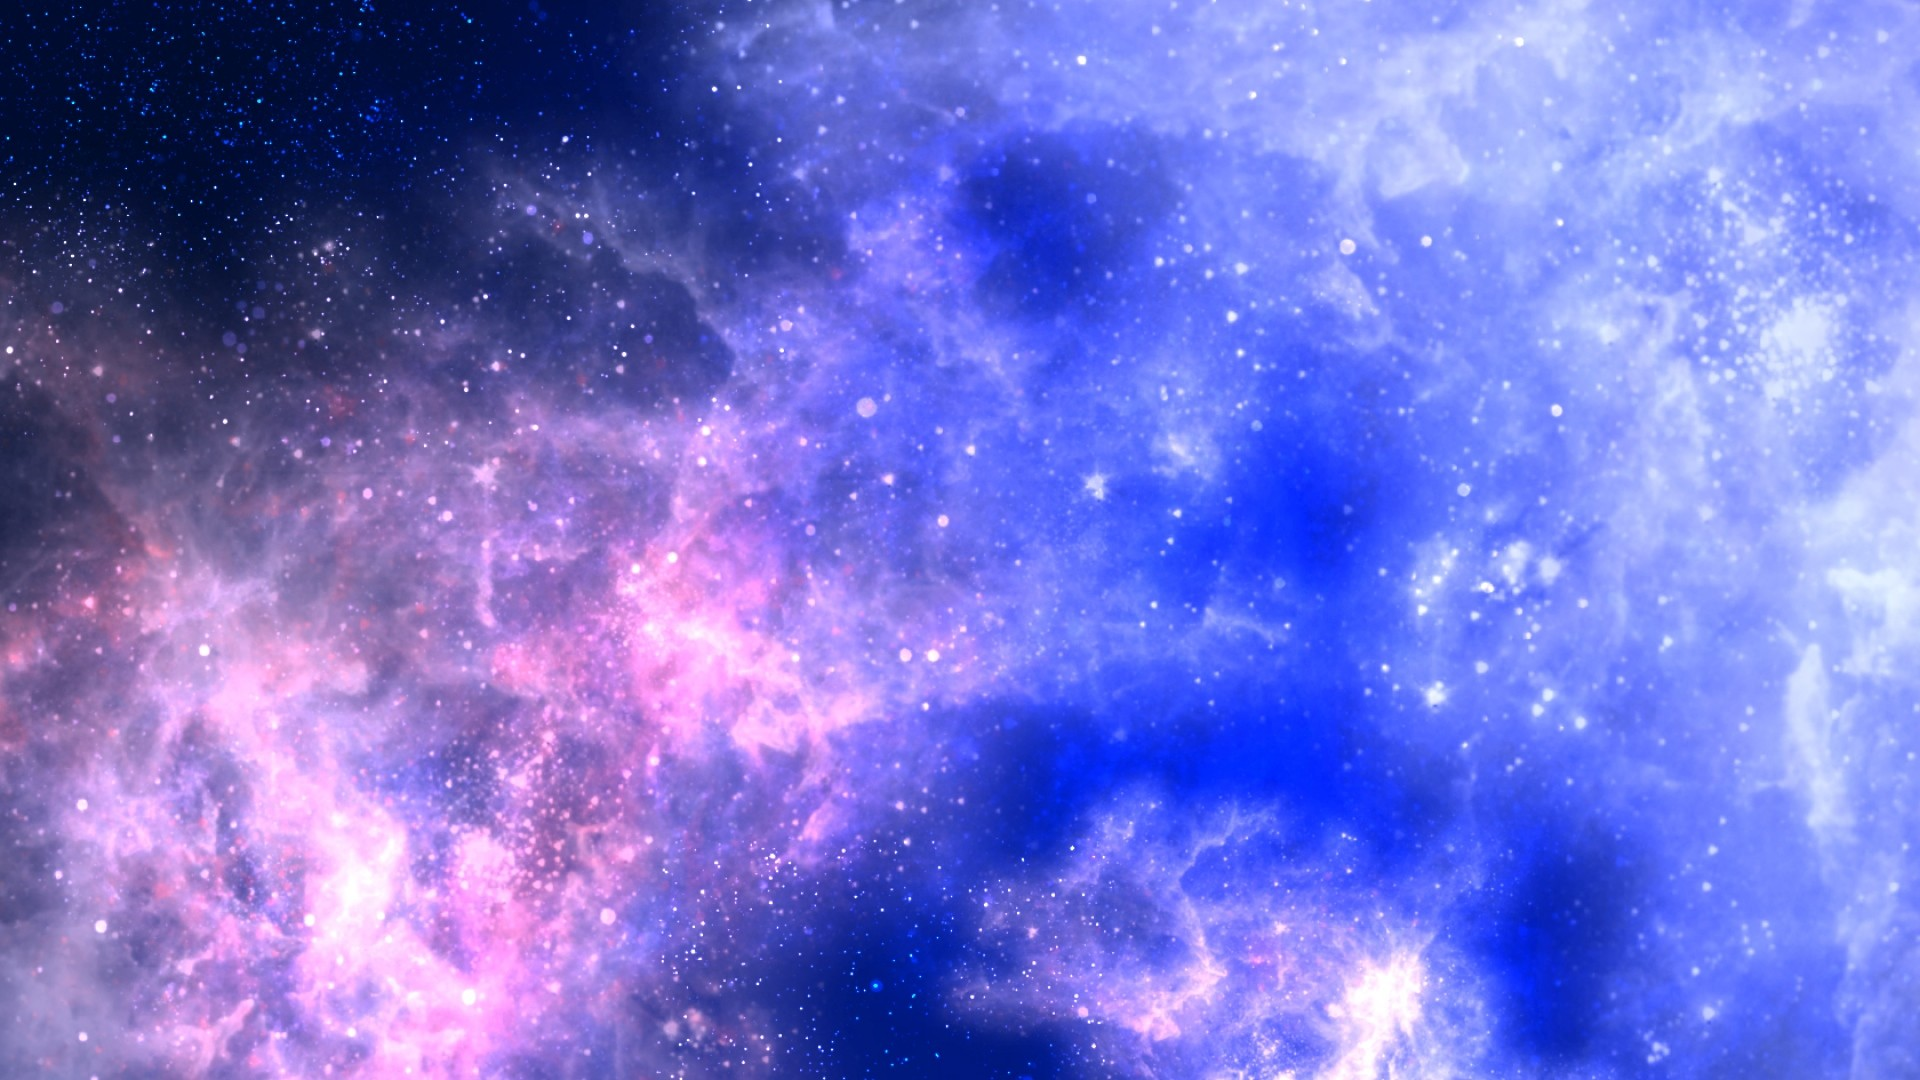 1920x1080 Purple Galaxy Wallpaper Tumblr Images & Pictures - Becuo | Galaxy |  Pinterest | Purple galaxy wallpaper